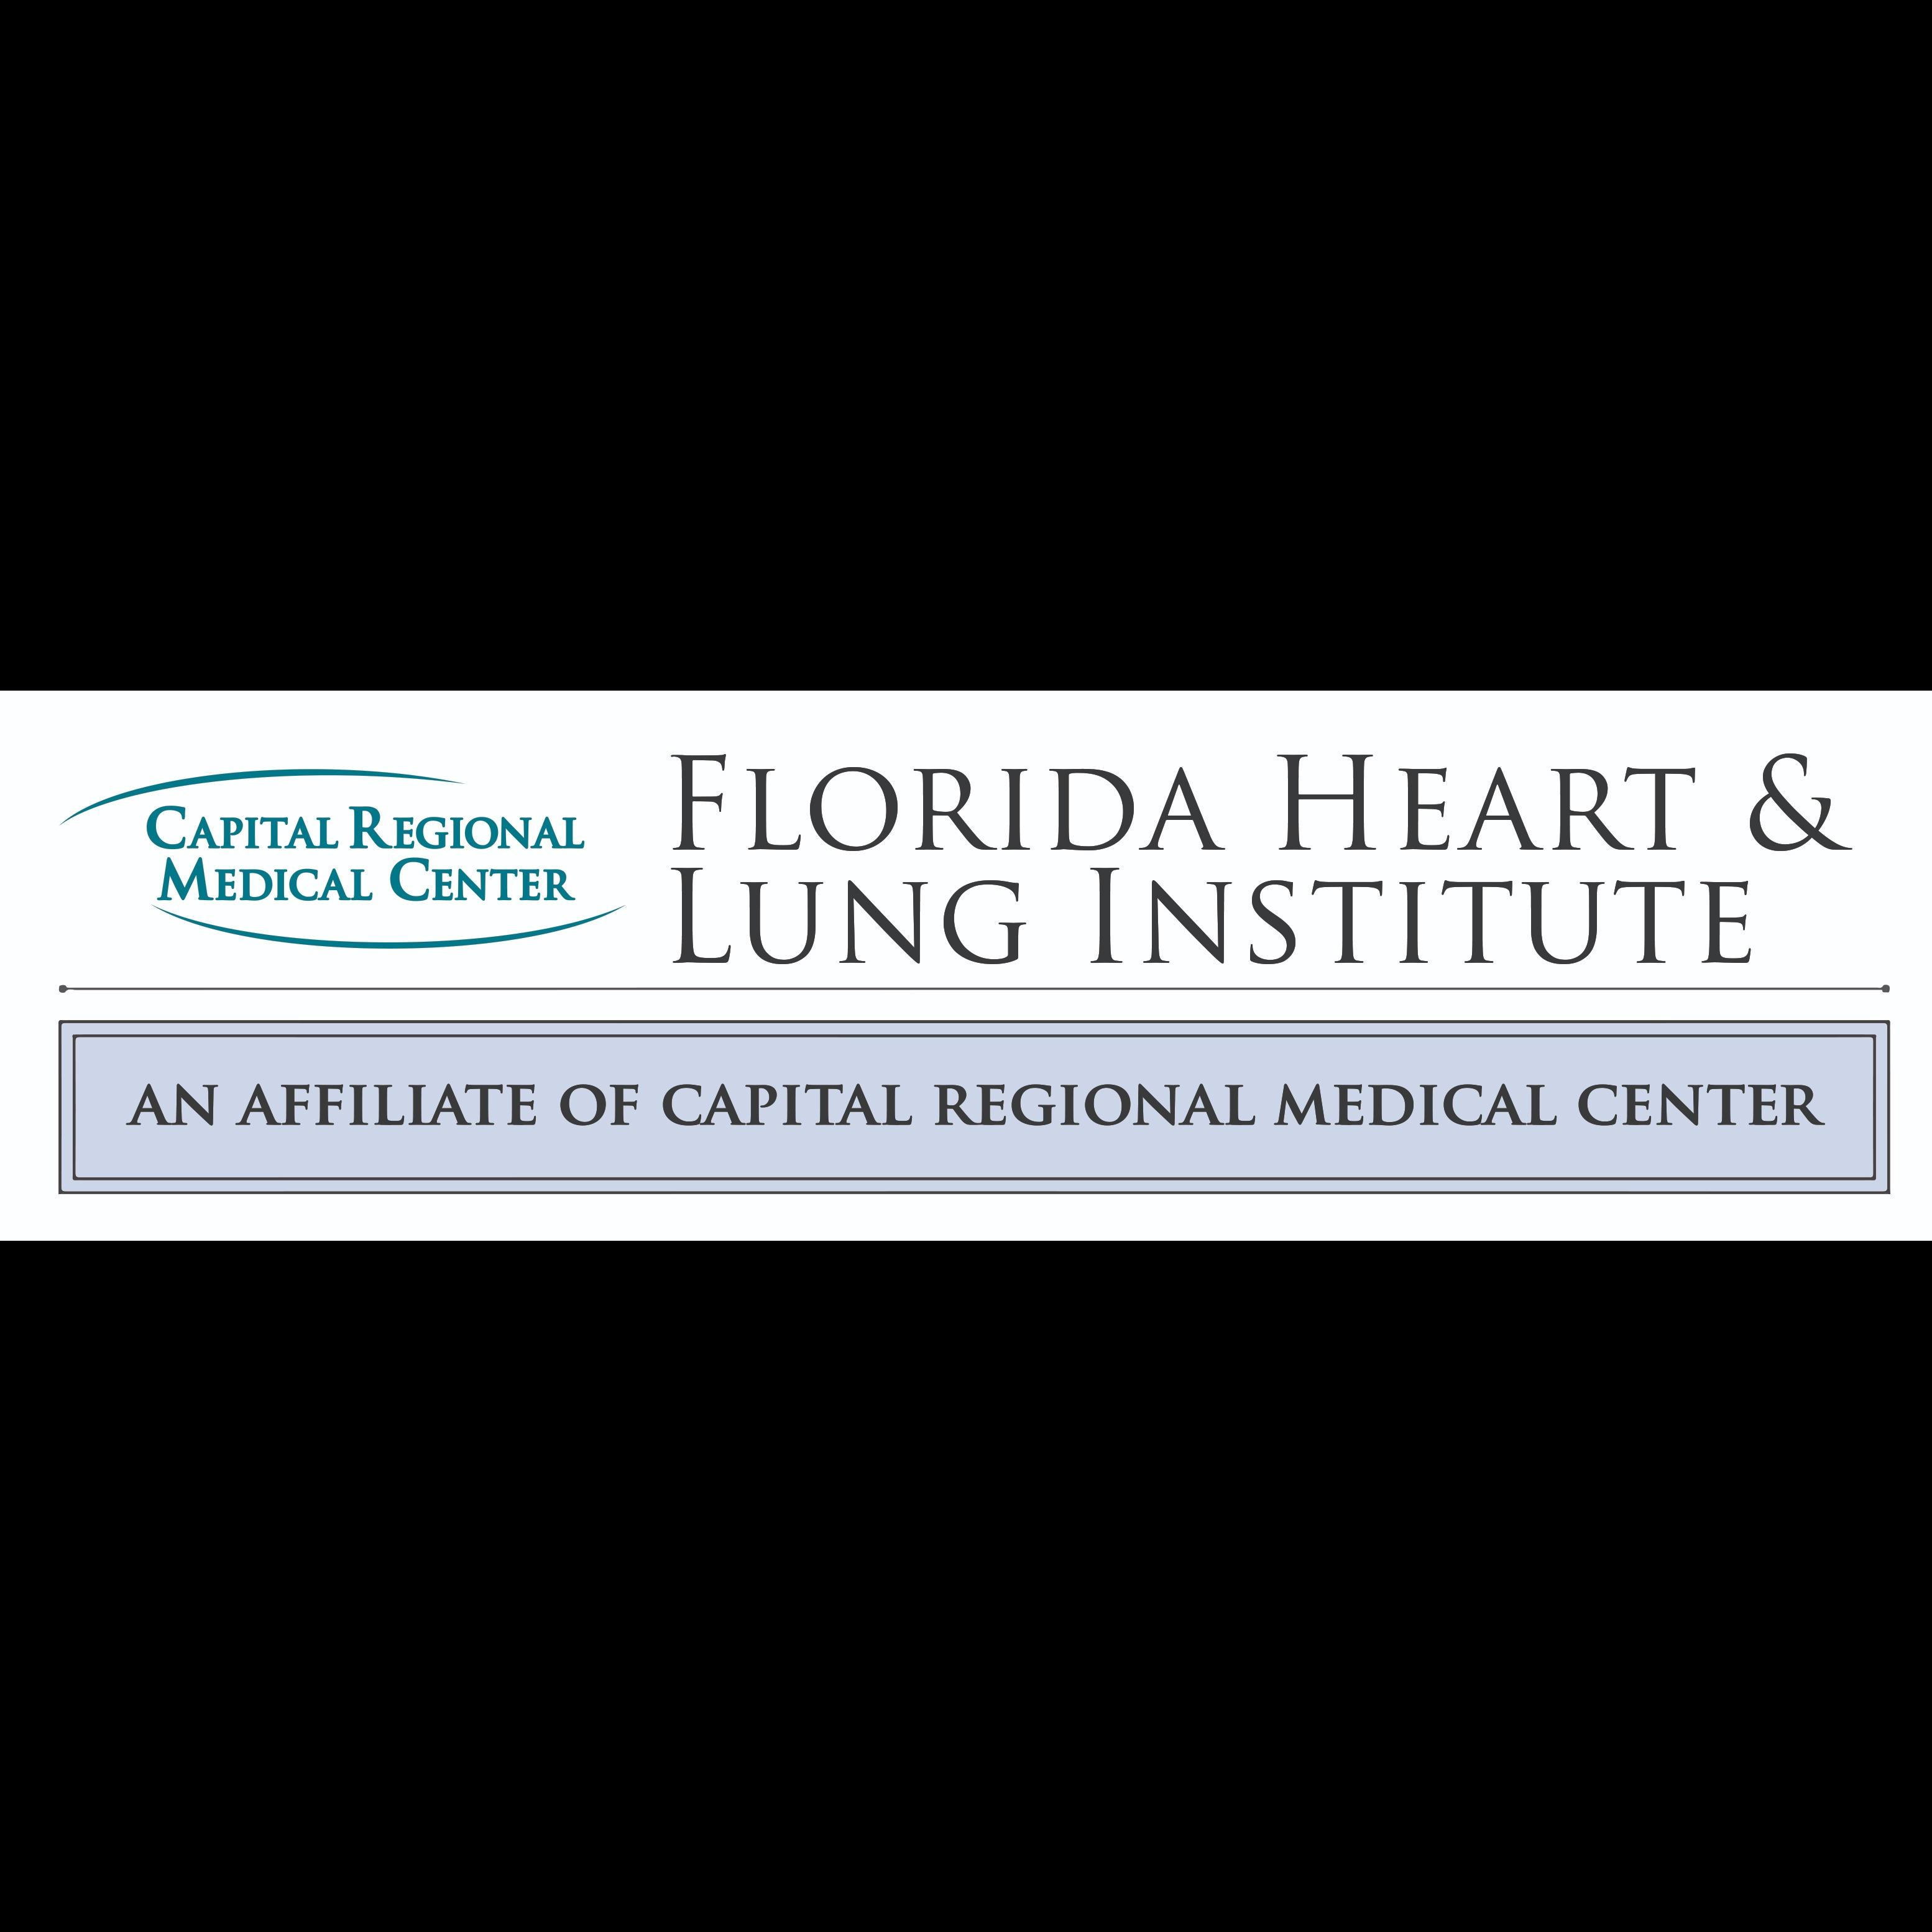 Florida Heart & Lung Institute at Capital Regional Medical Center